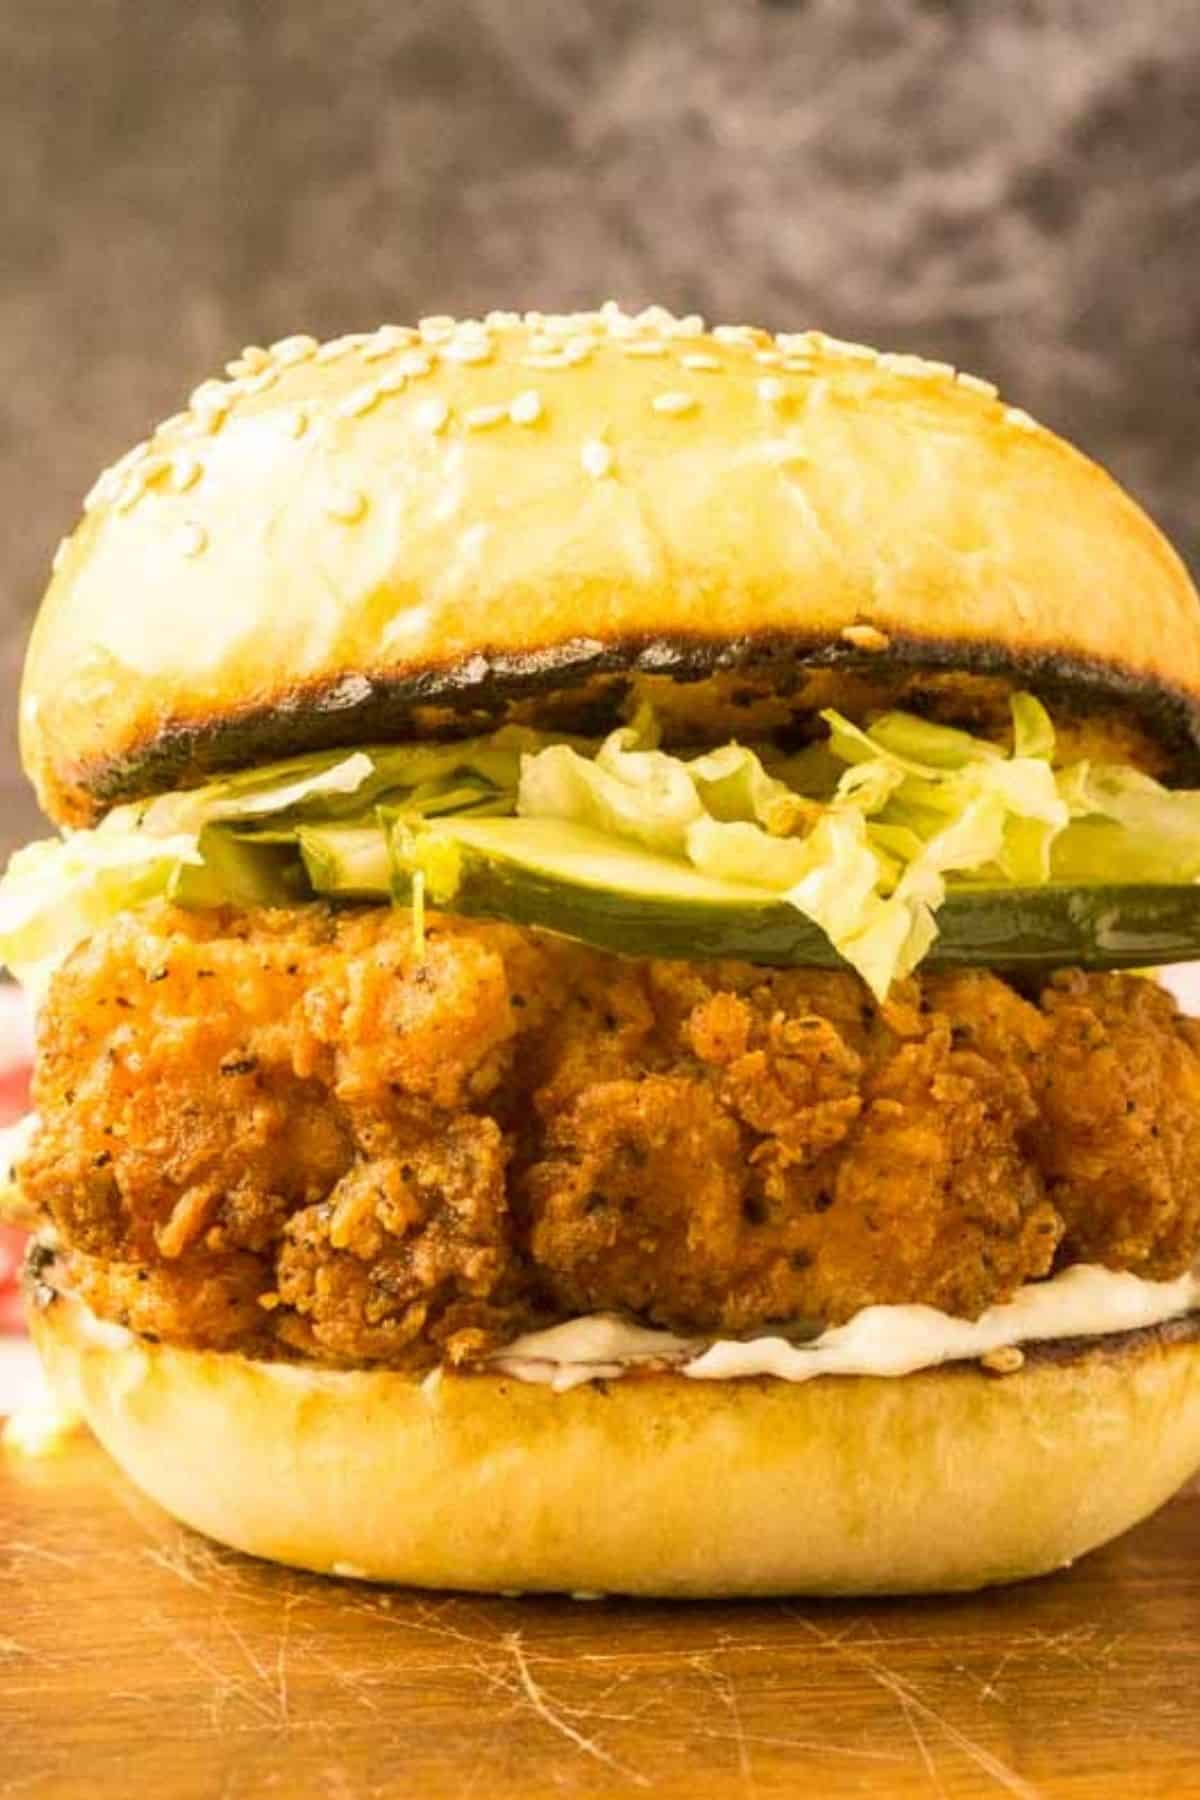 fried chicken sandwich with pickle and lettuce